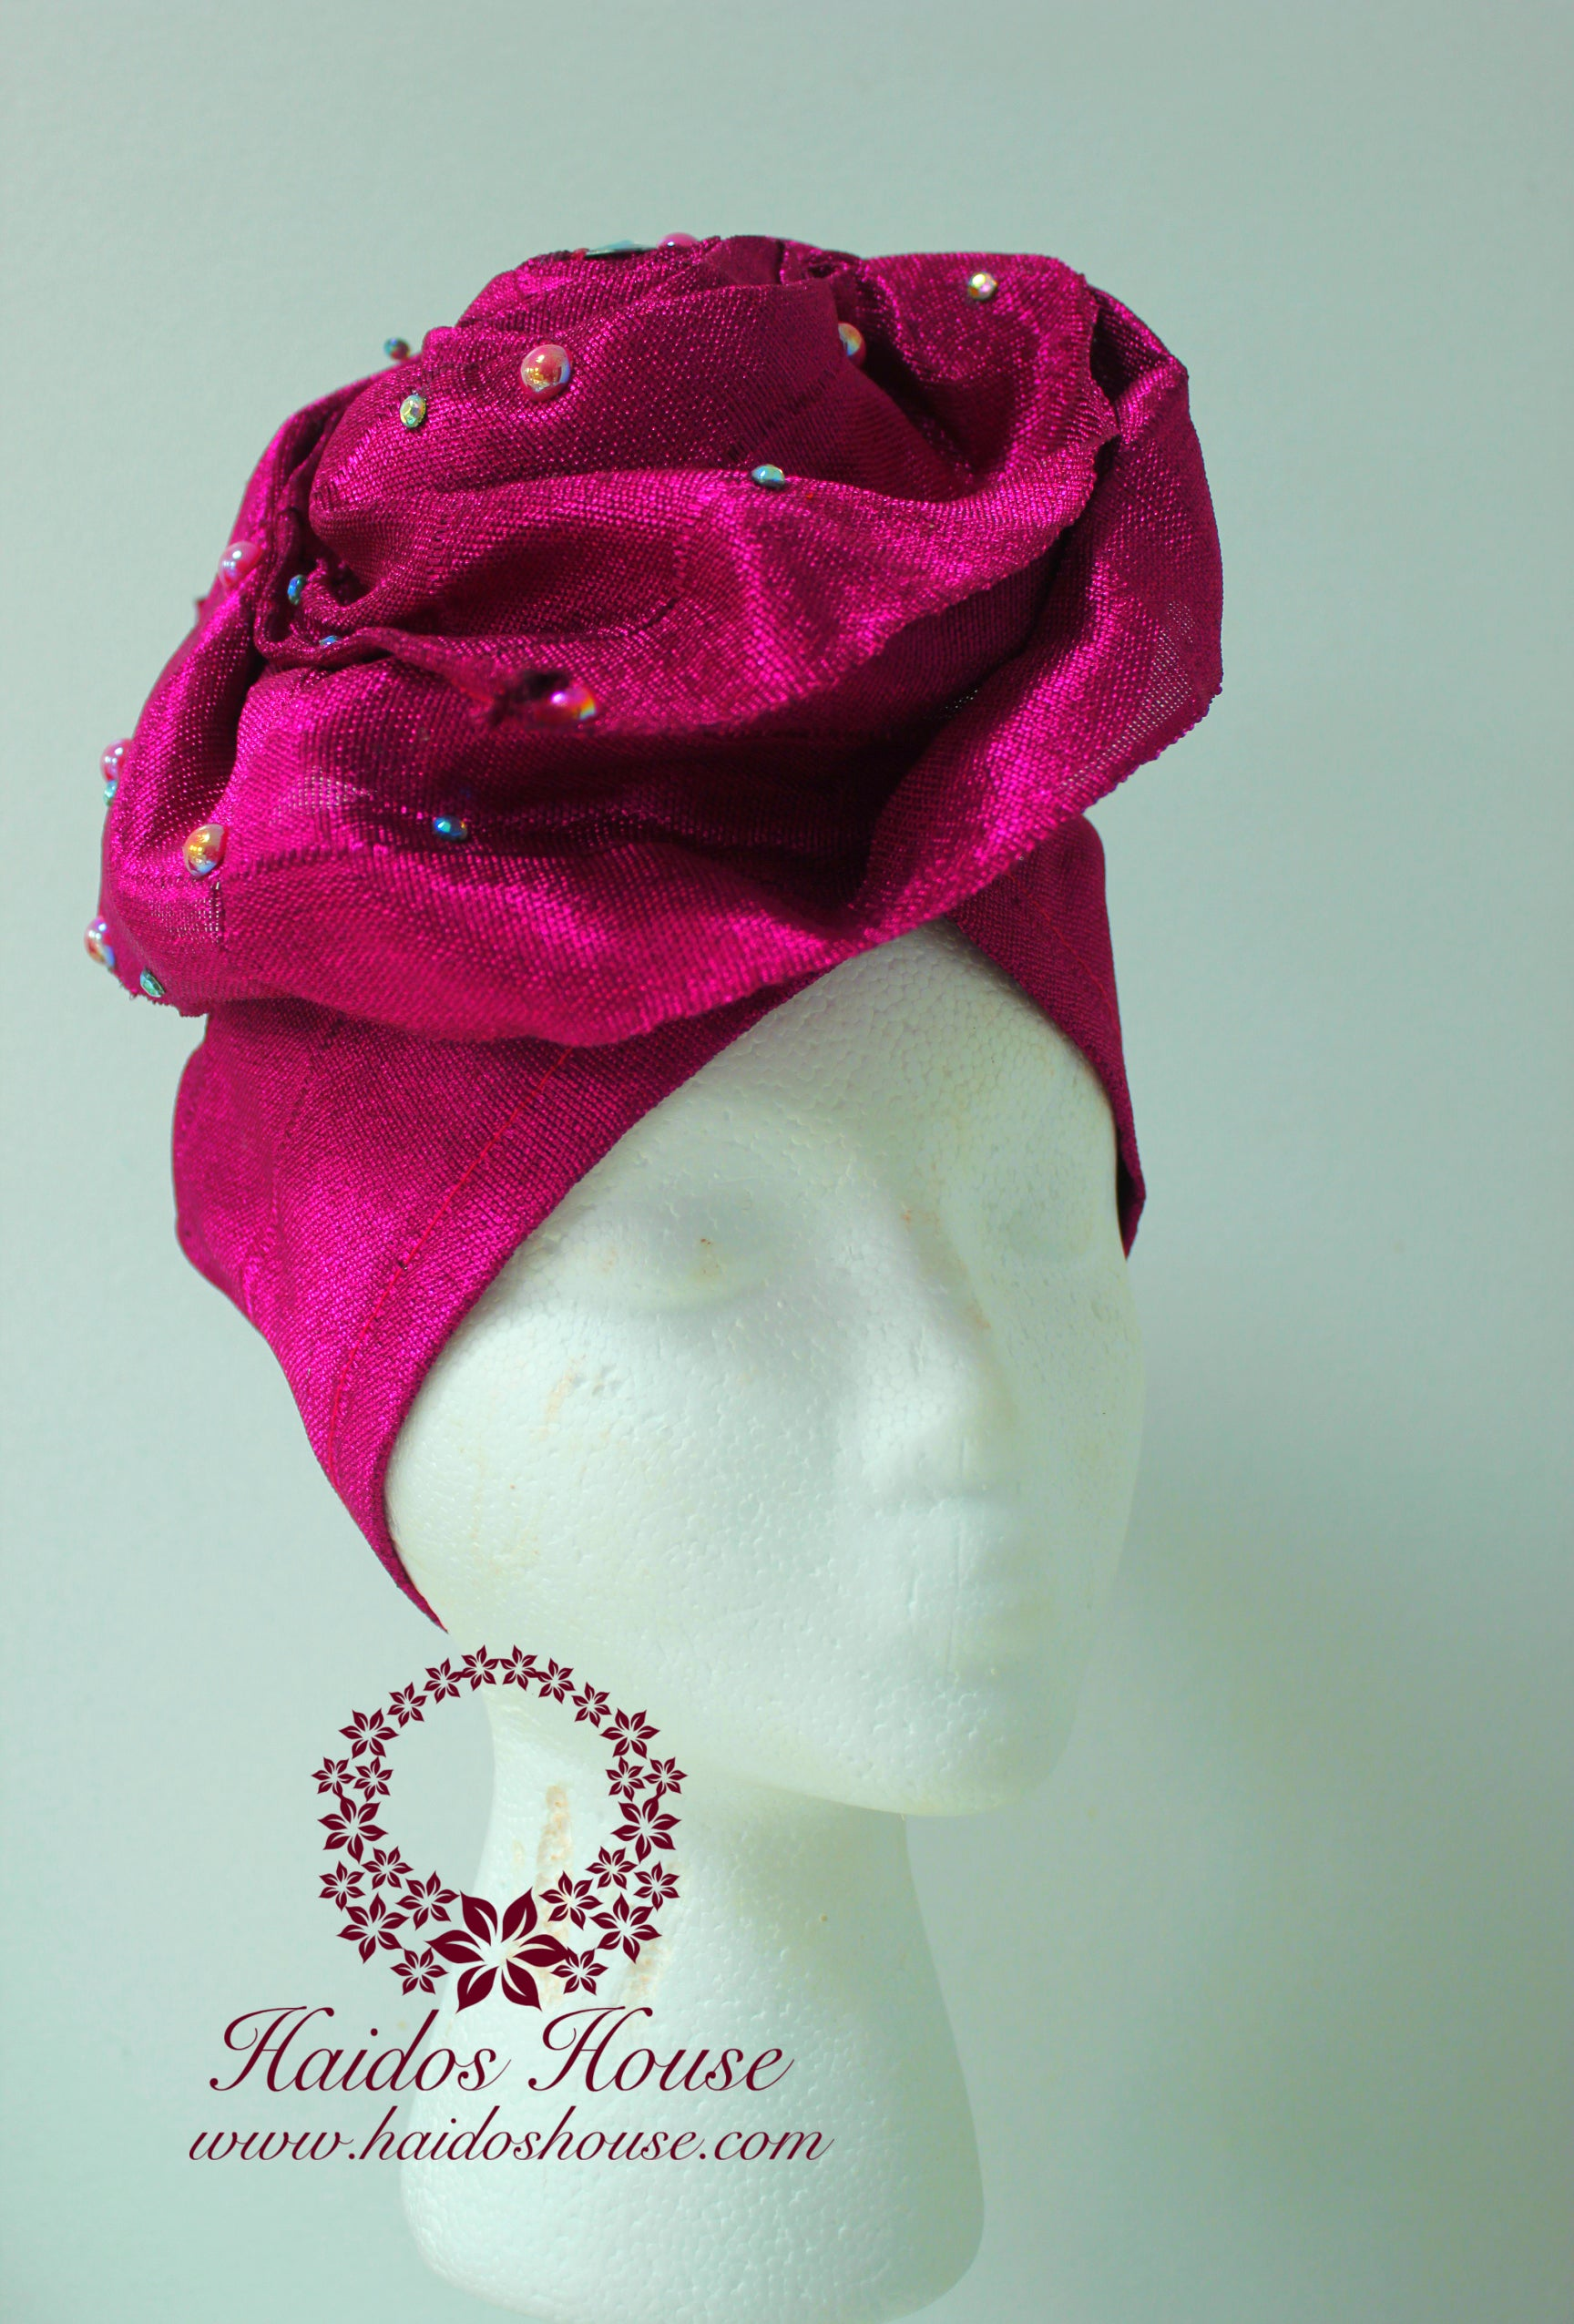 AG - Lovely Rose Design Auto-Gele/ Aso-oke Turban in Magenta